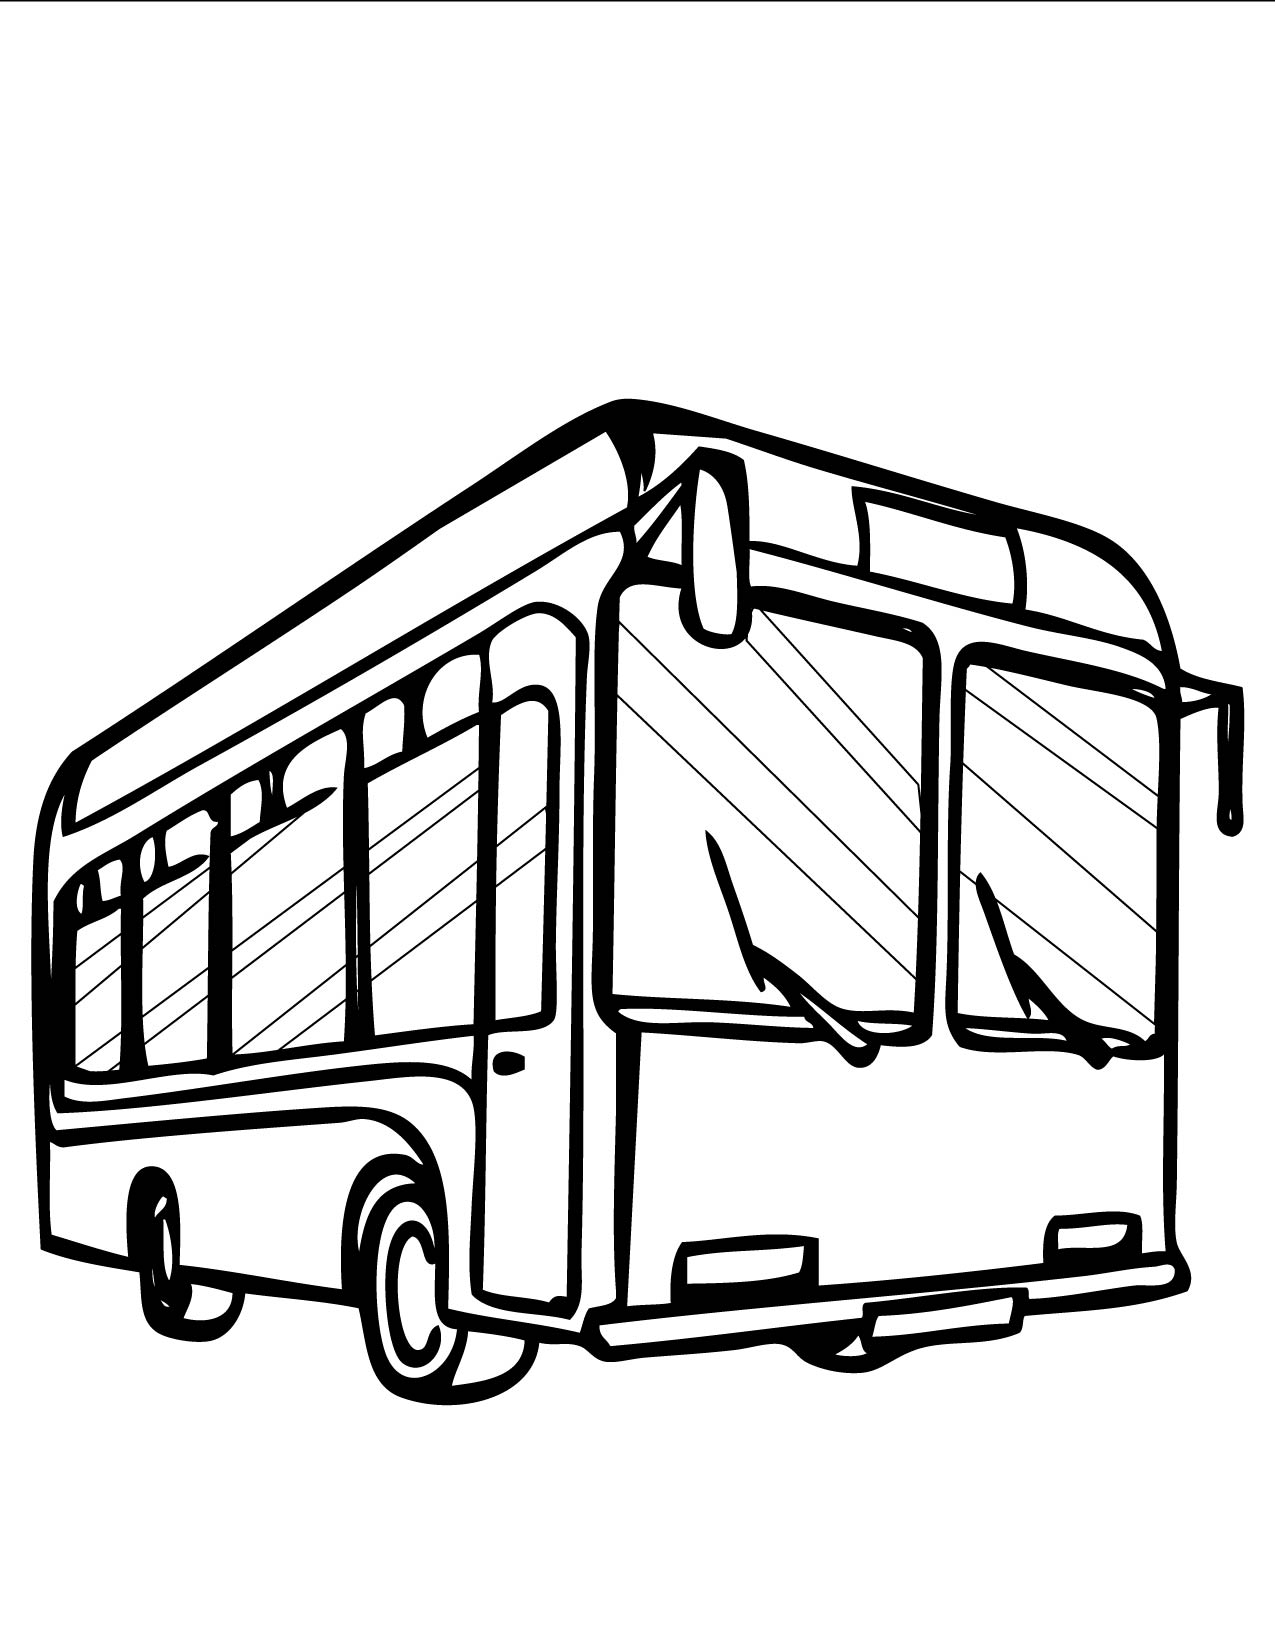 Bus Coloring Page  Handipoints